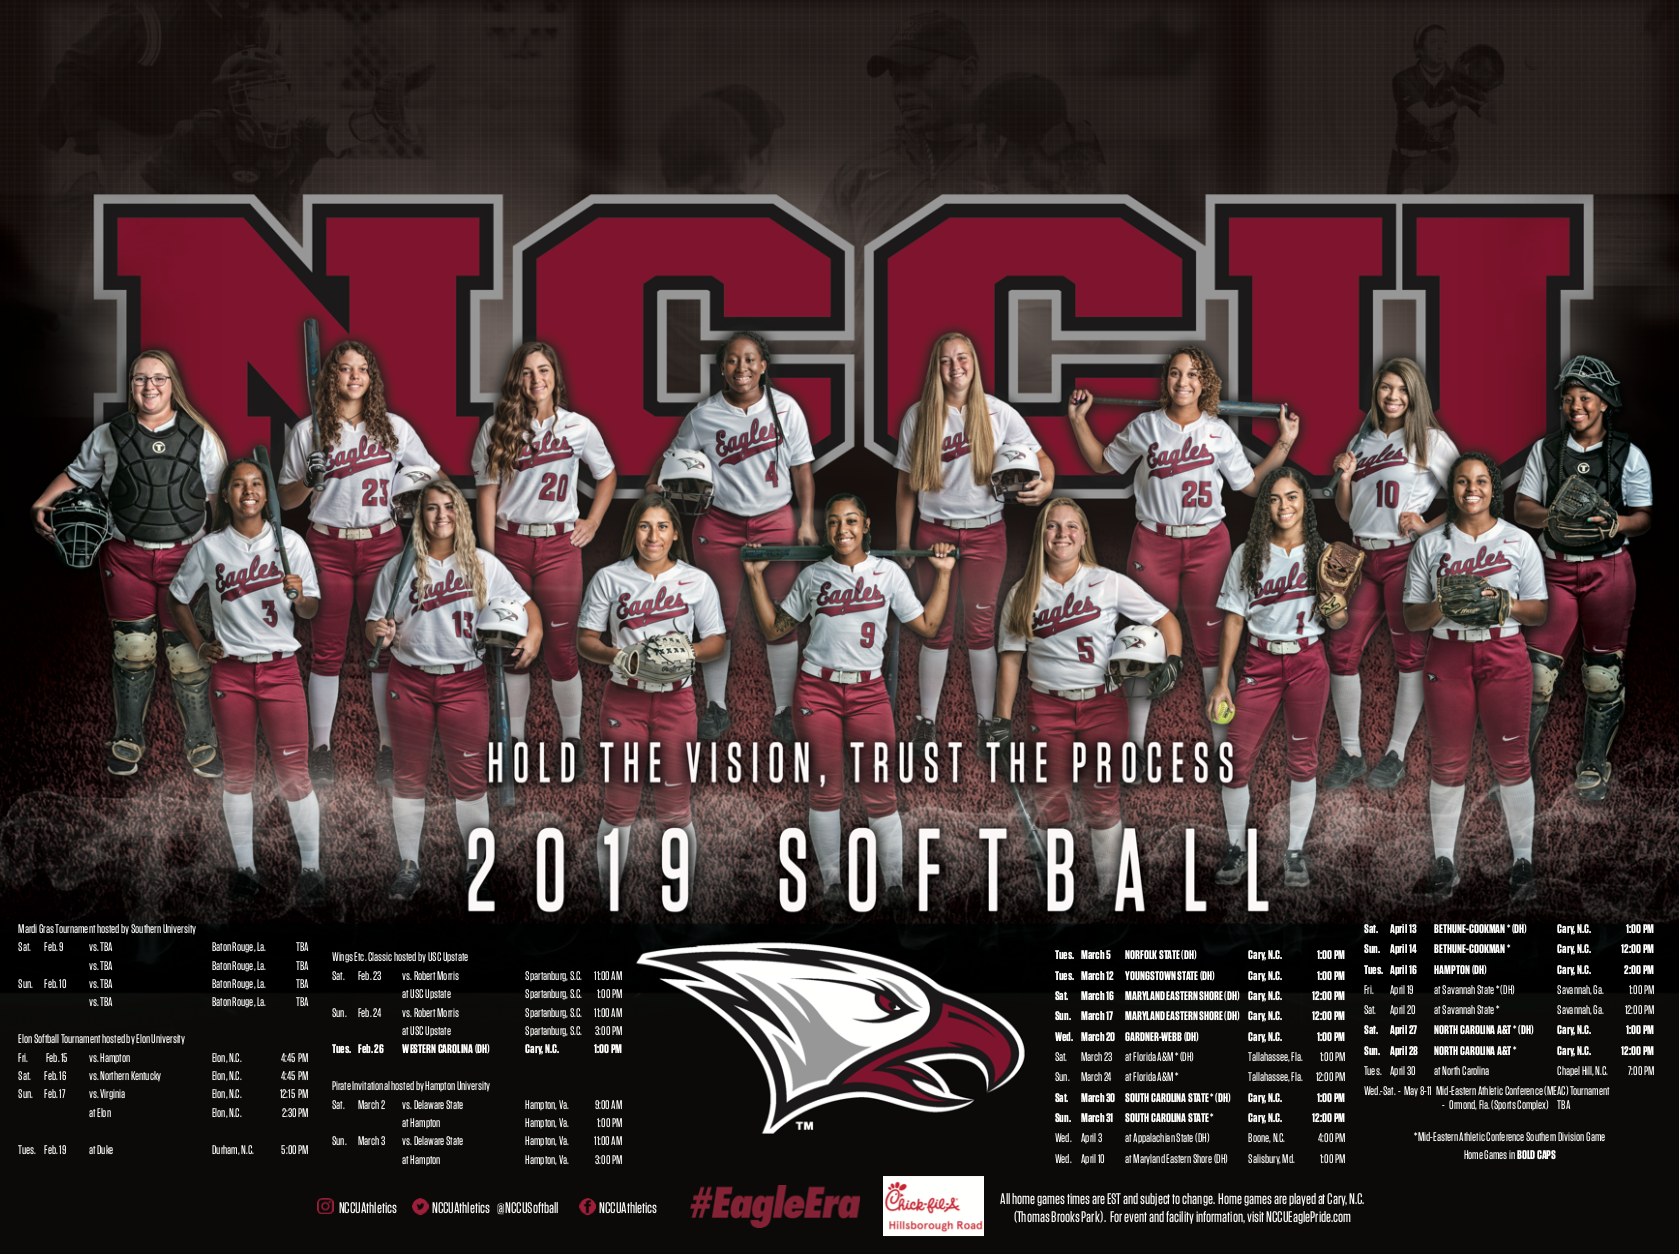 North Carolina Central Softball Schedule Poster Softball Poster Branding